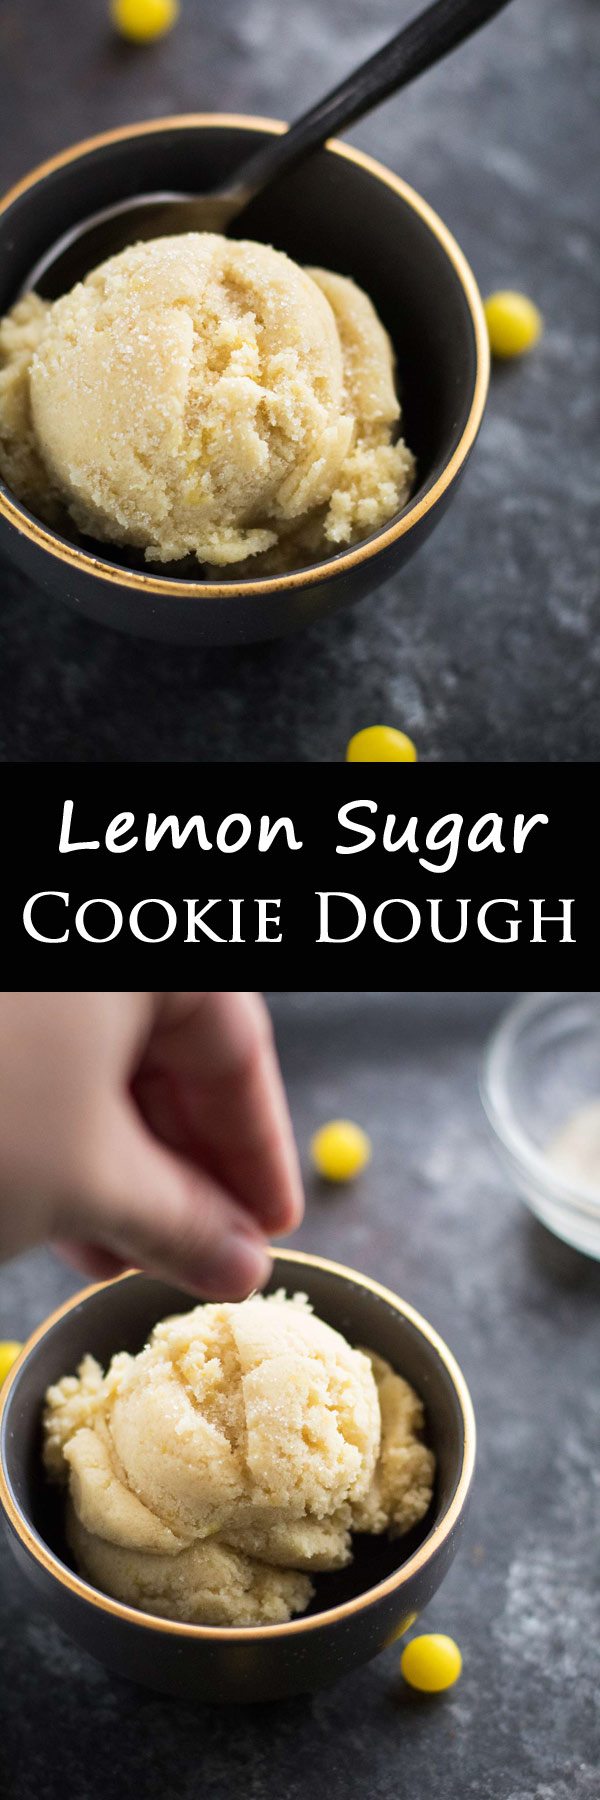 This eggless edible lemon sugar cookie dough is perfect, topped with sprinkles of sugar or lemon heads! My husband's personal favorite!